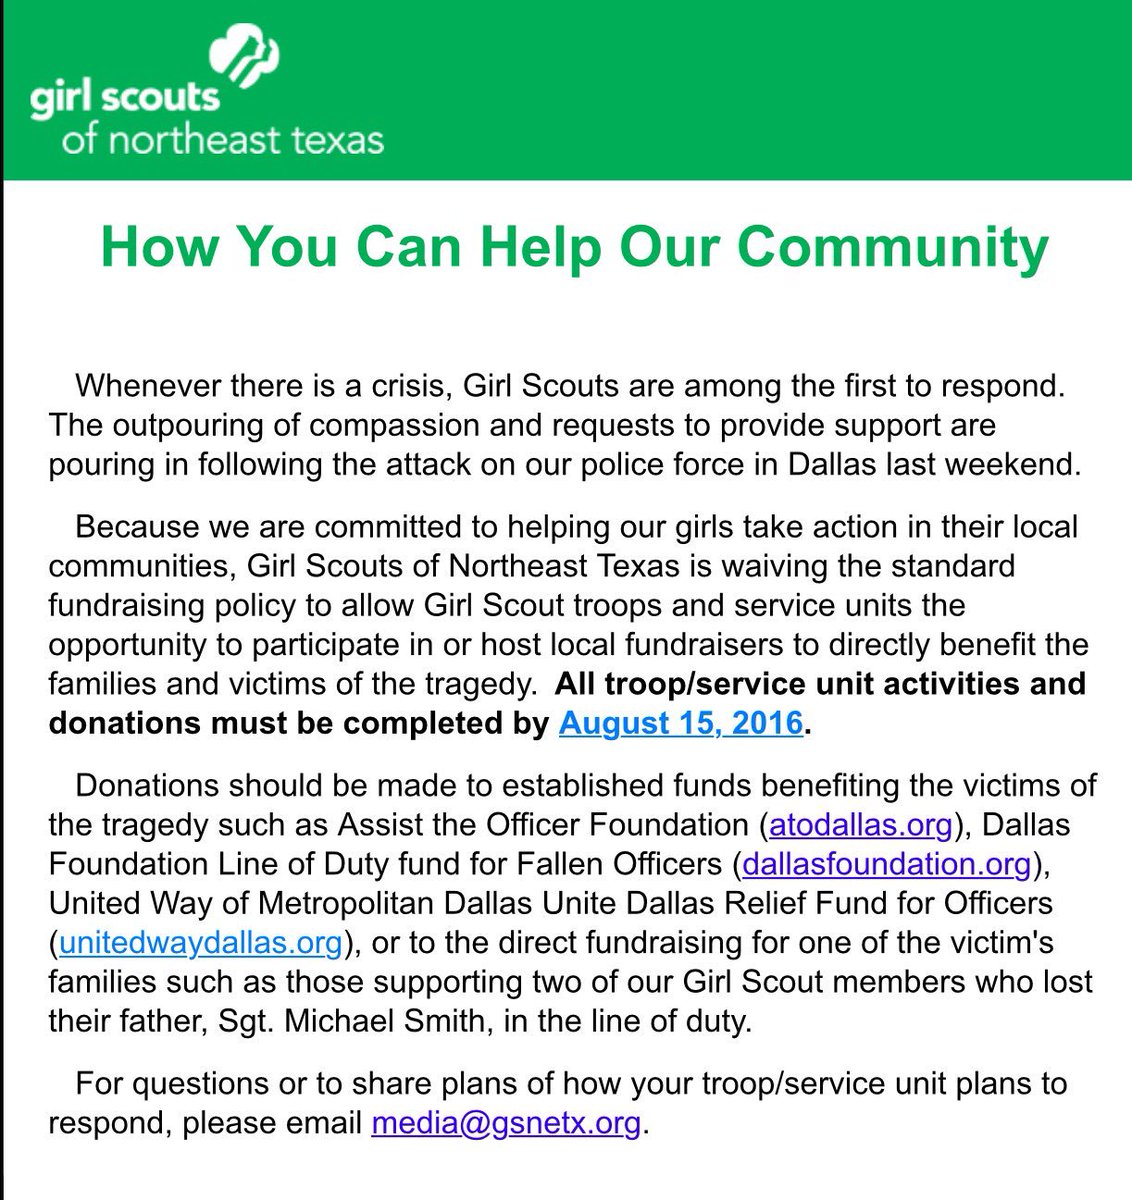 Girl Scouts change policy to support officers. no mention of black lives lost #gsnetx @girlscouts #blacklivesmatter https://t.co/RGsIOBjFbI